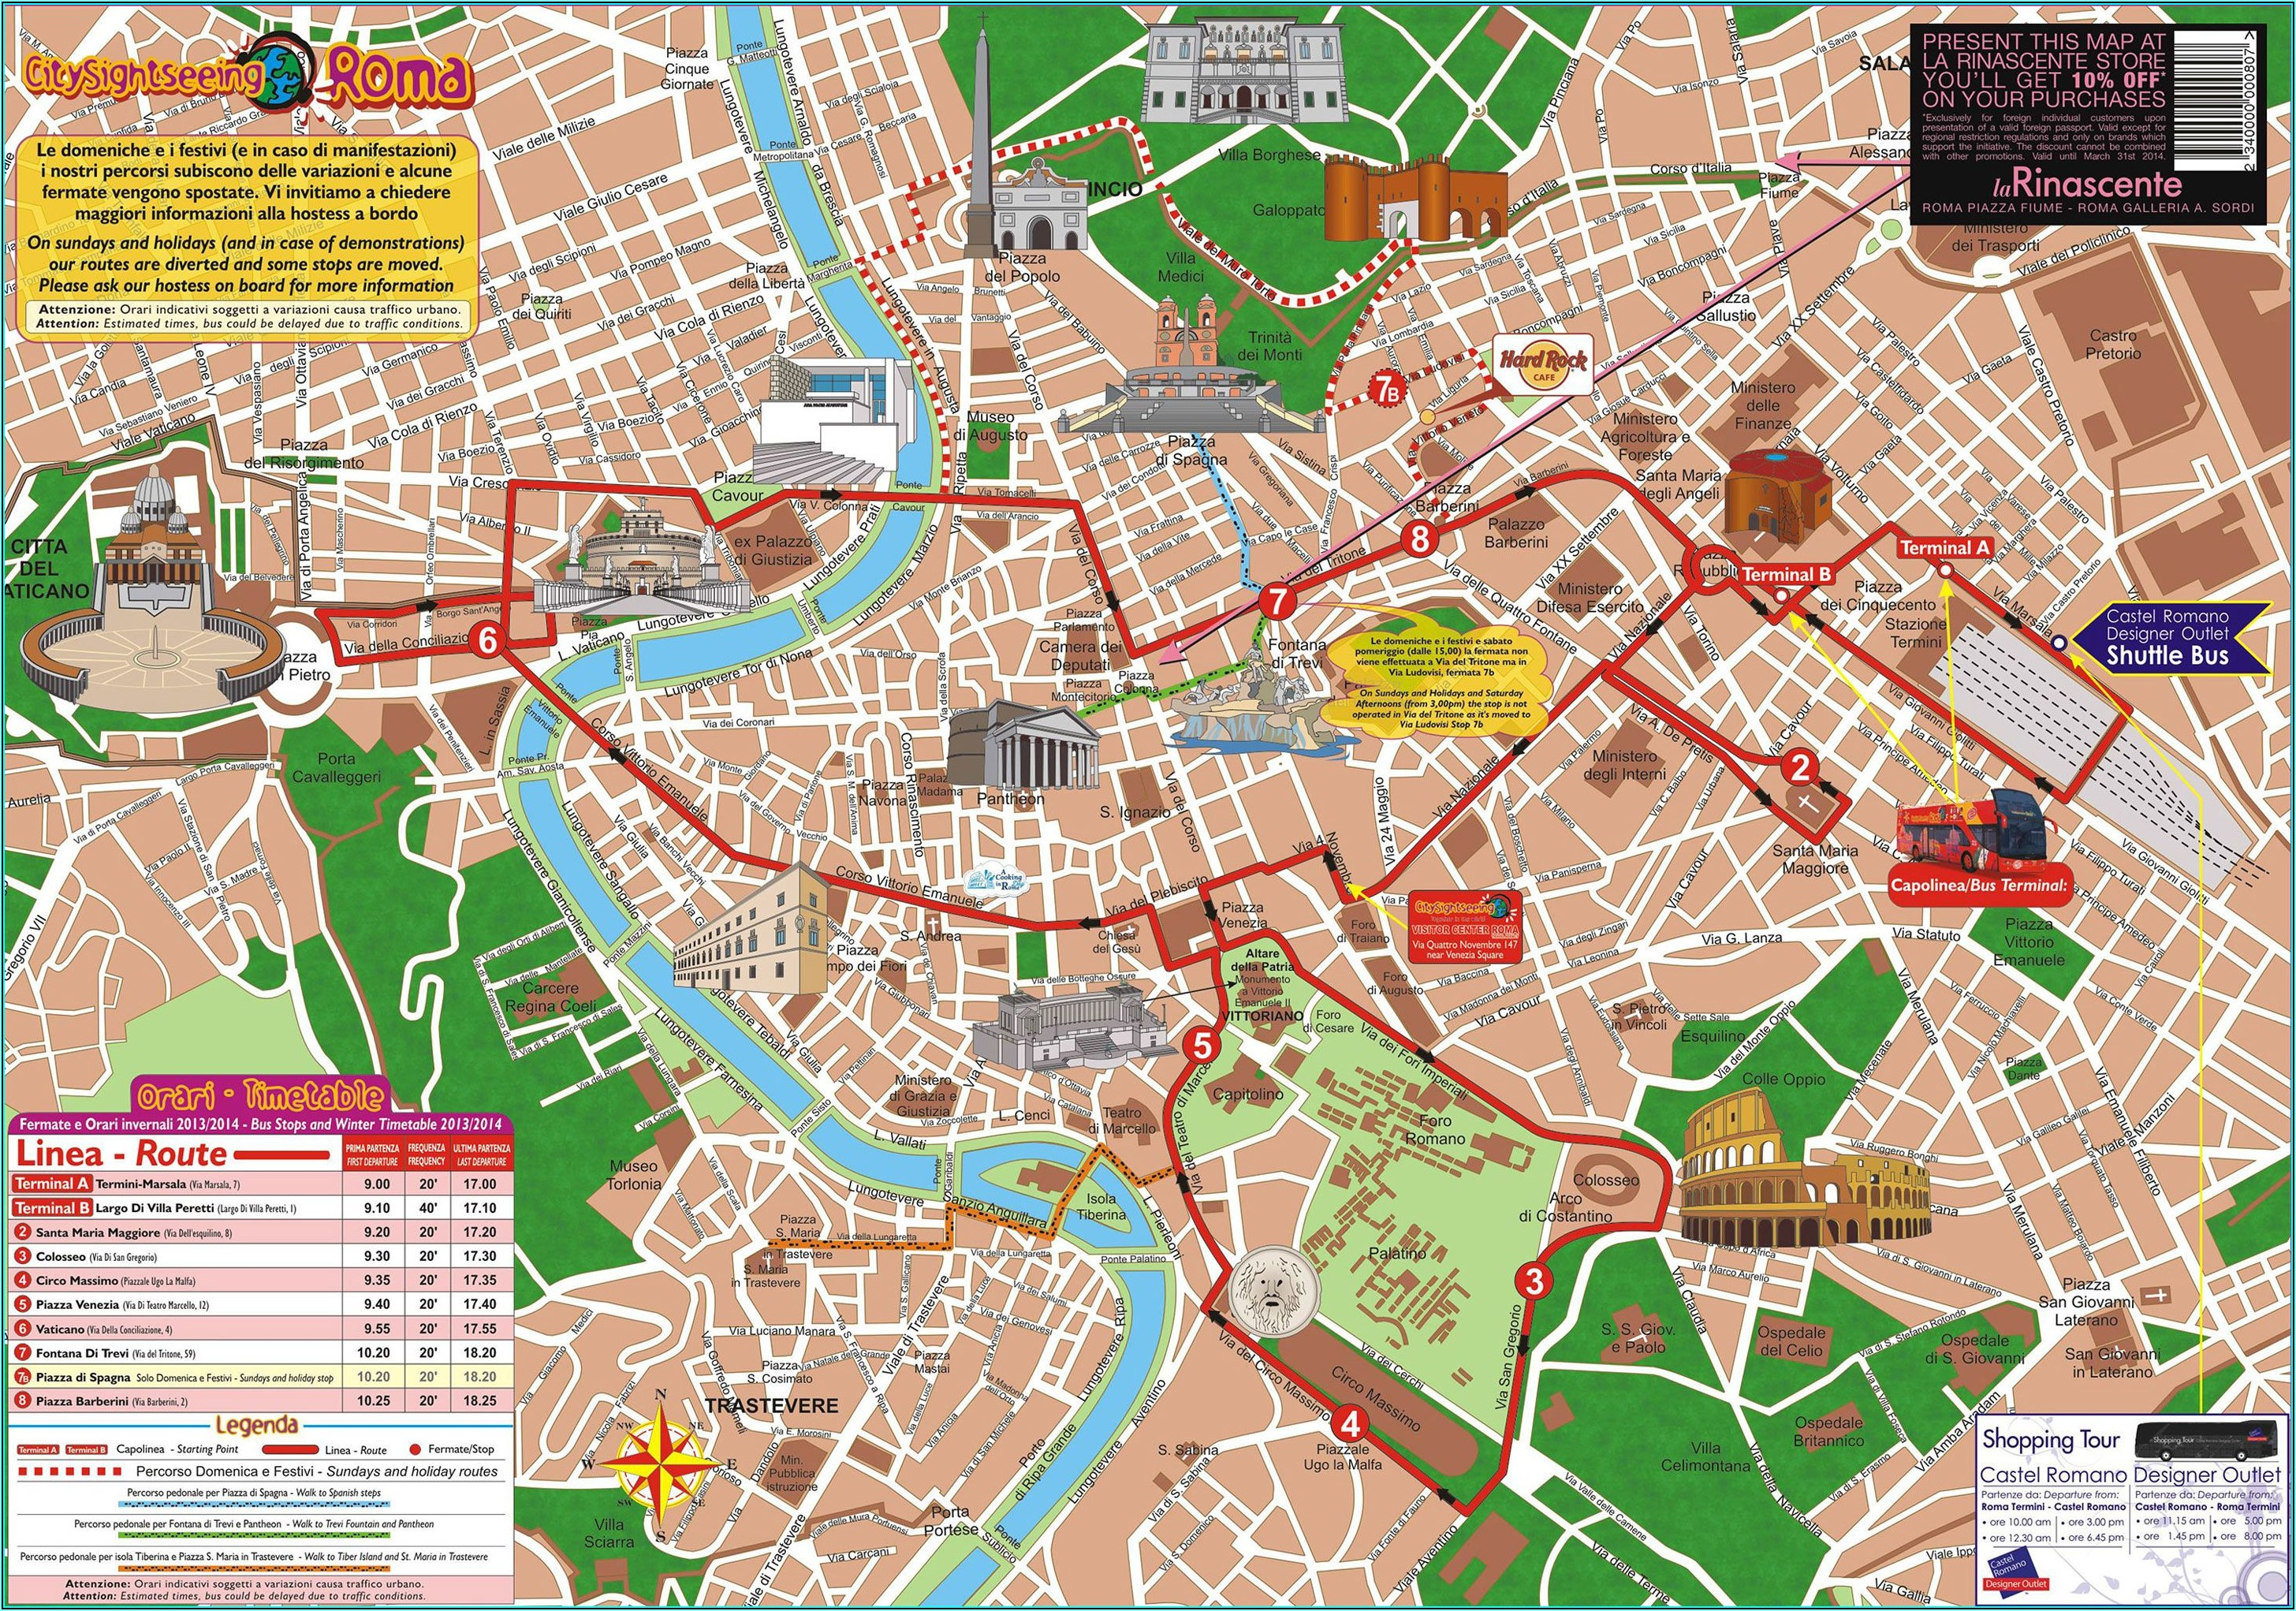 Rome Hop On Hop Off Bus Map